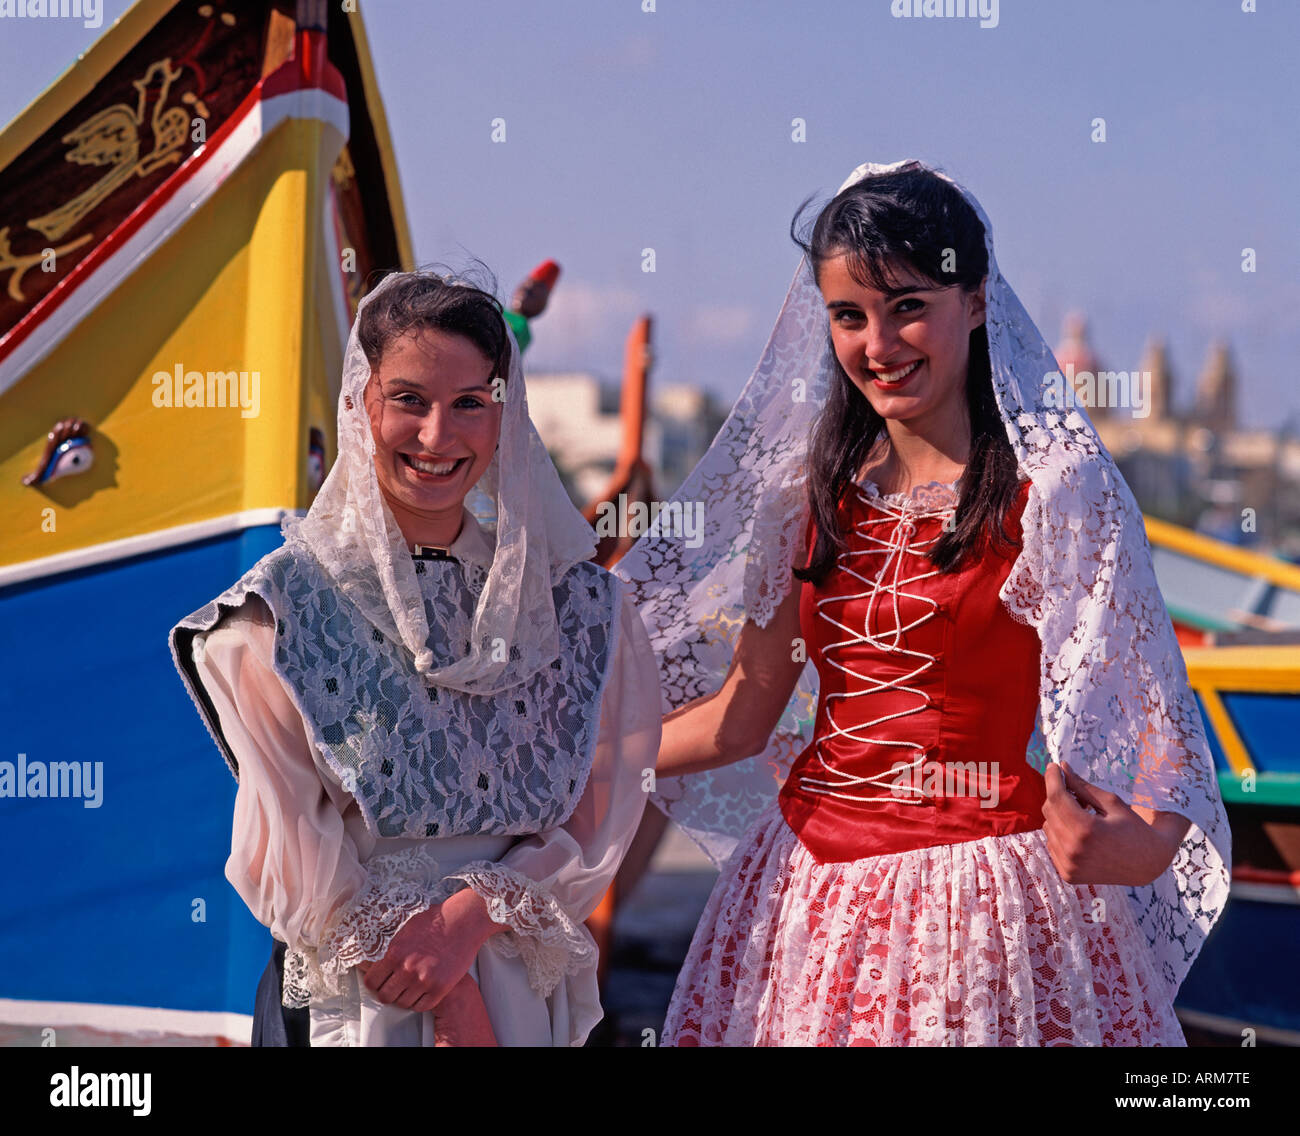 Women in National Dress Malta Stock Photo